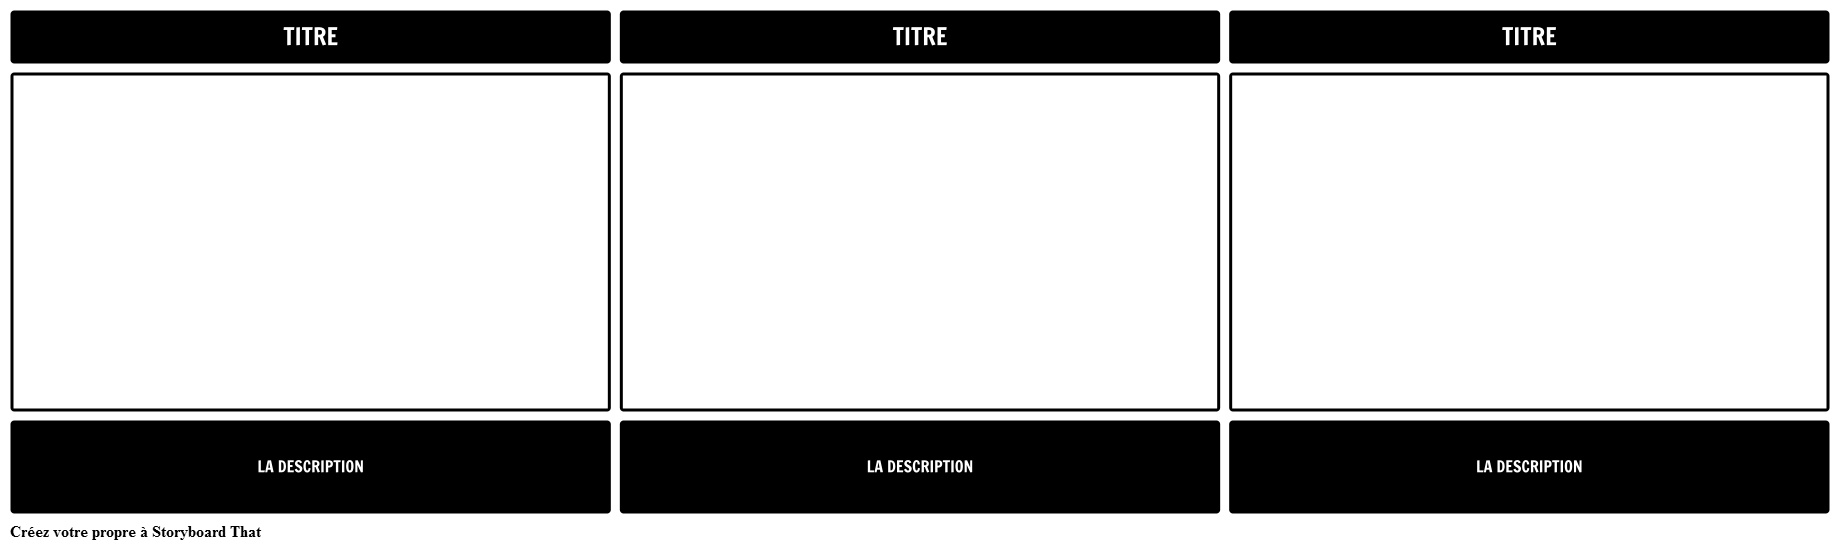 Titre-Description 16x9